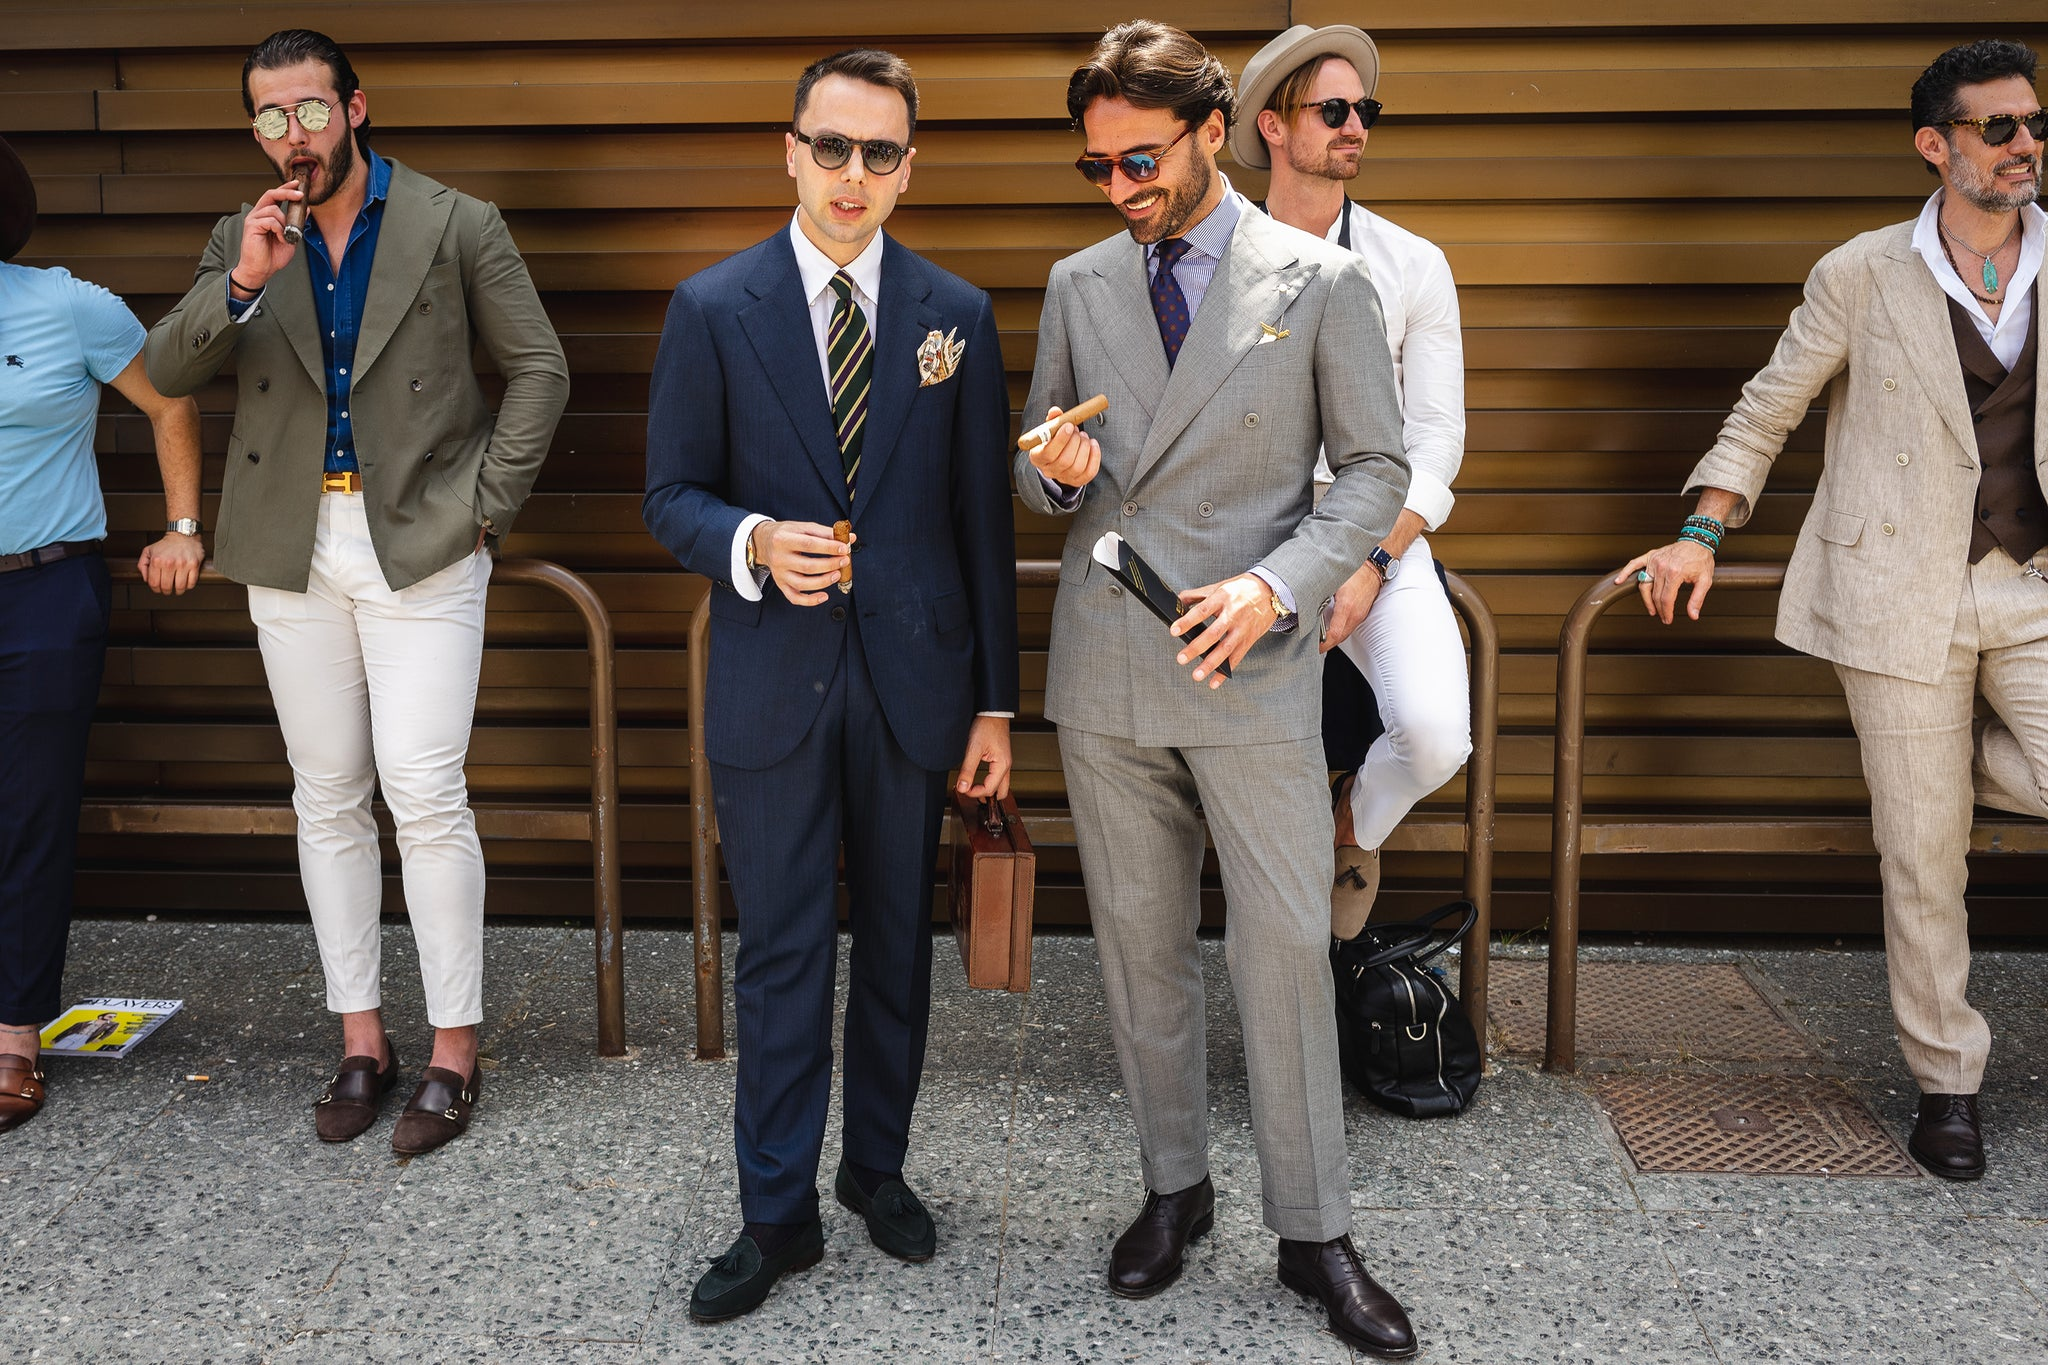 Pitti Uomo: Best Street Style und Cuban Cigars Moments egm Zigarren